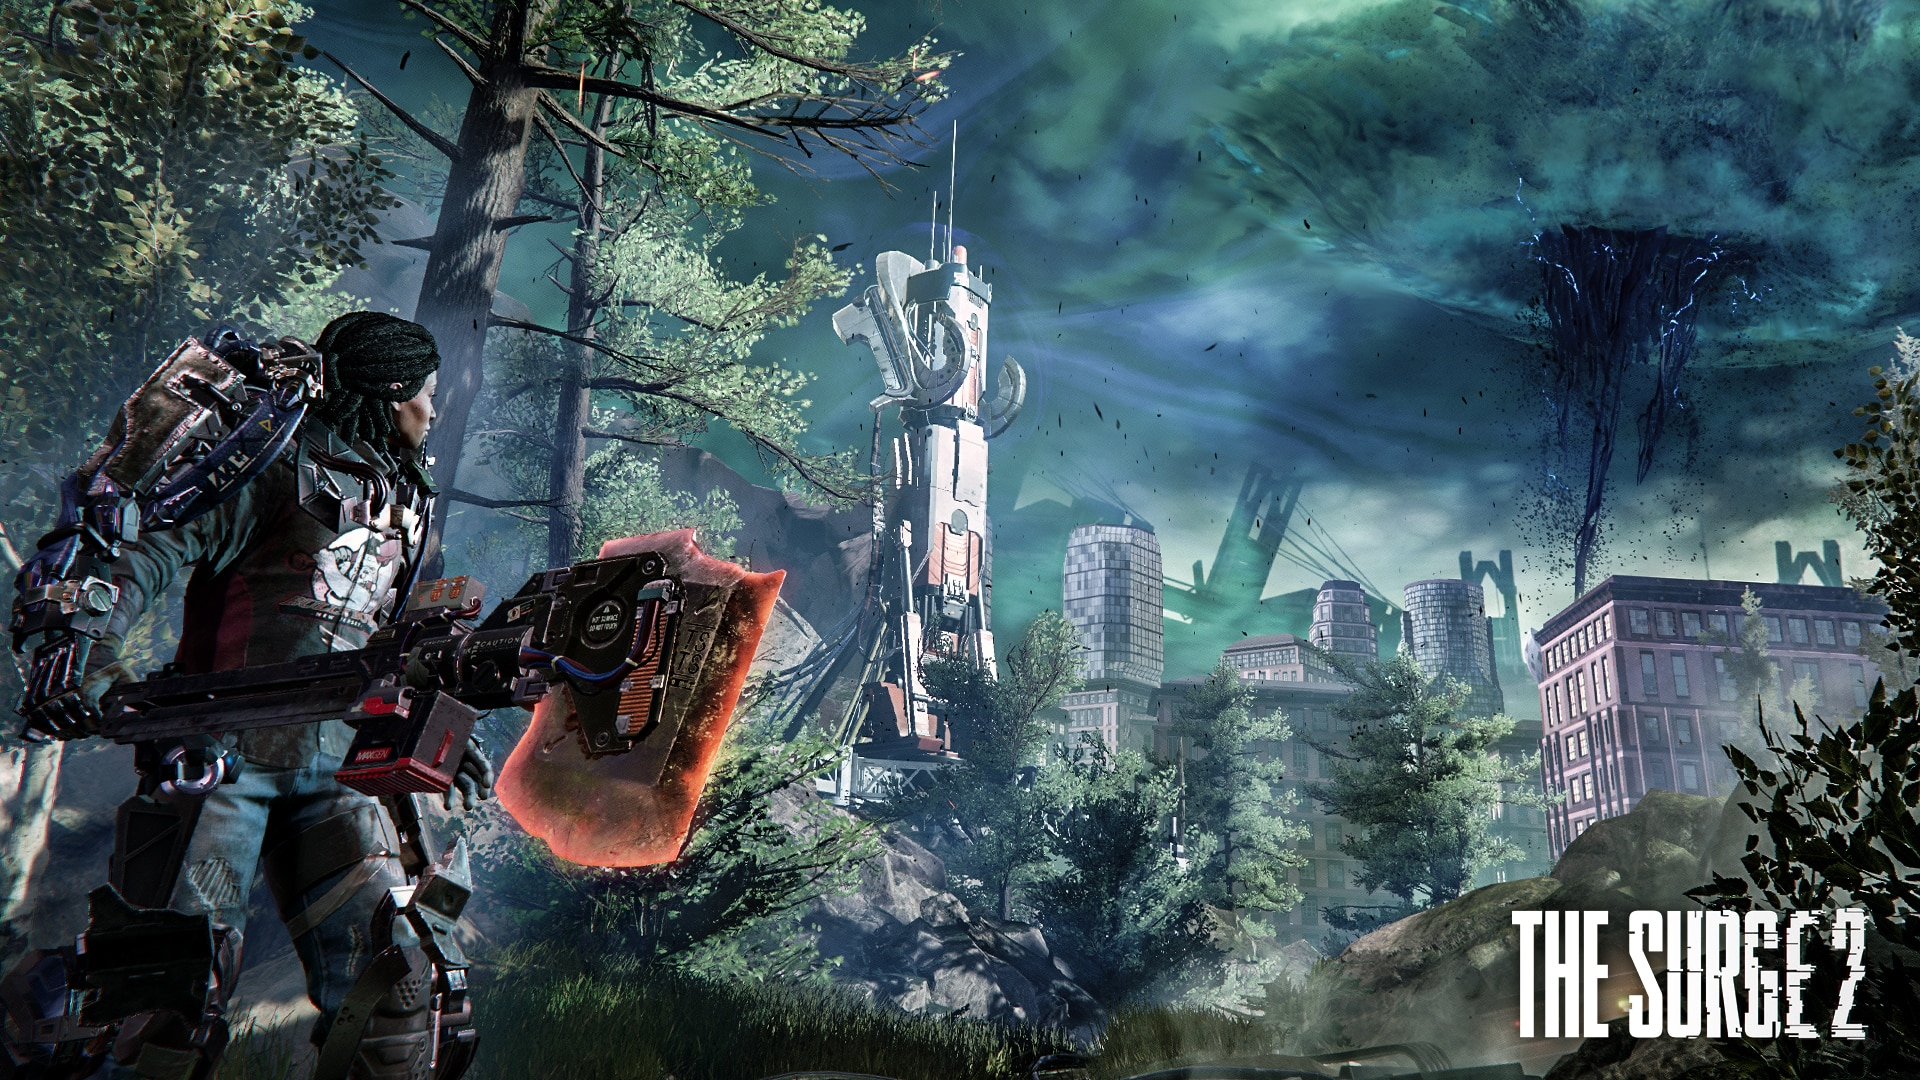 TheSurge2 screenshots03 - E3 2018: Super Fighting Robots, THE SURGE 2!